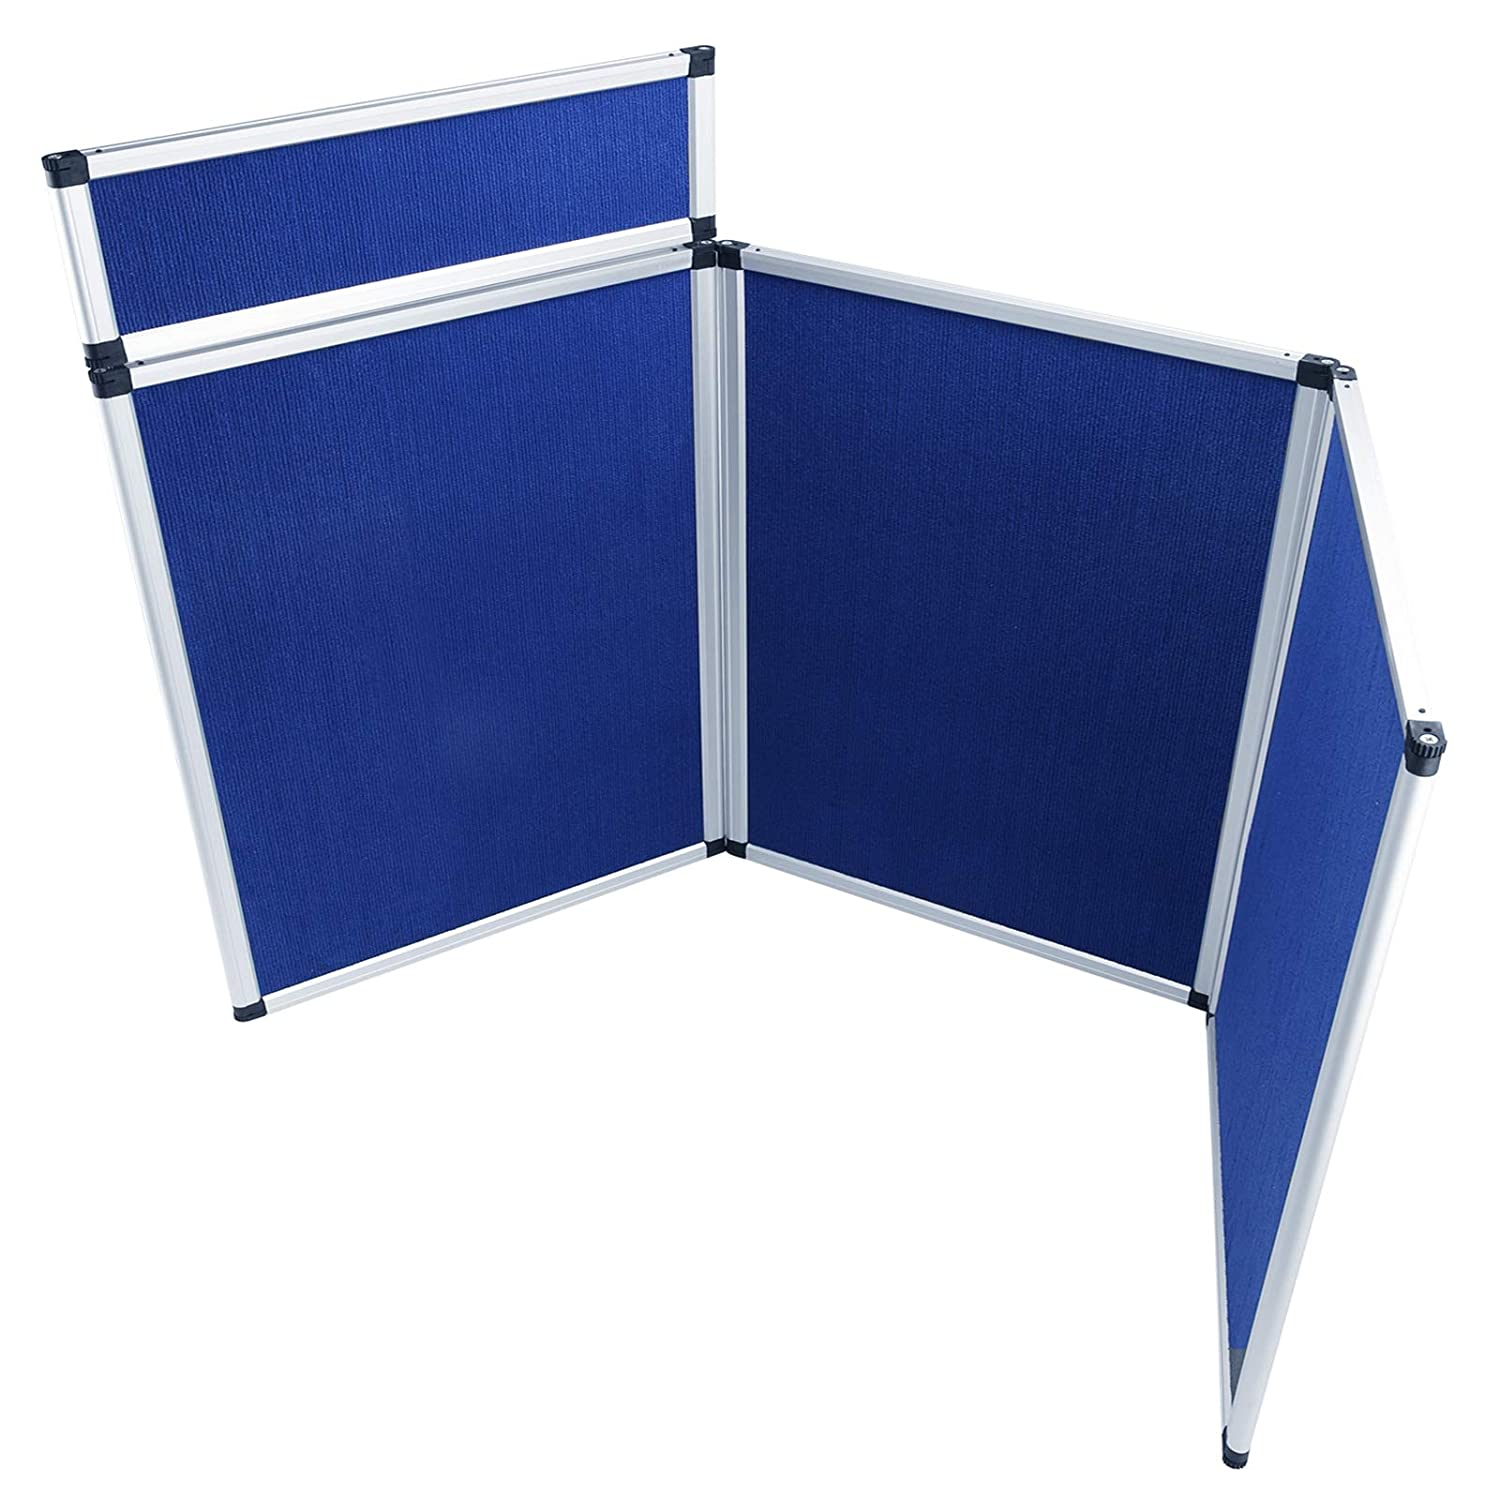 Voilamart Folding Exhibition Display Board 3 Panel Show Board and Header Flannelette Surface Aluminium Frame Kit for Displays Schools Conferences and Office Blue with Carry Bag